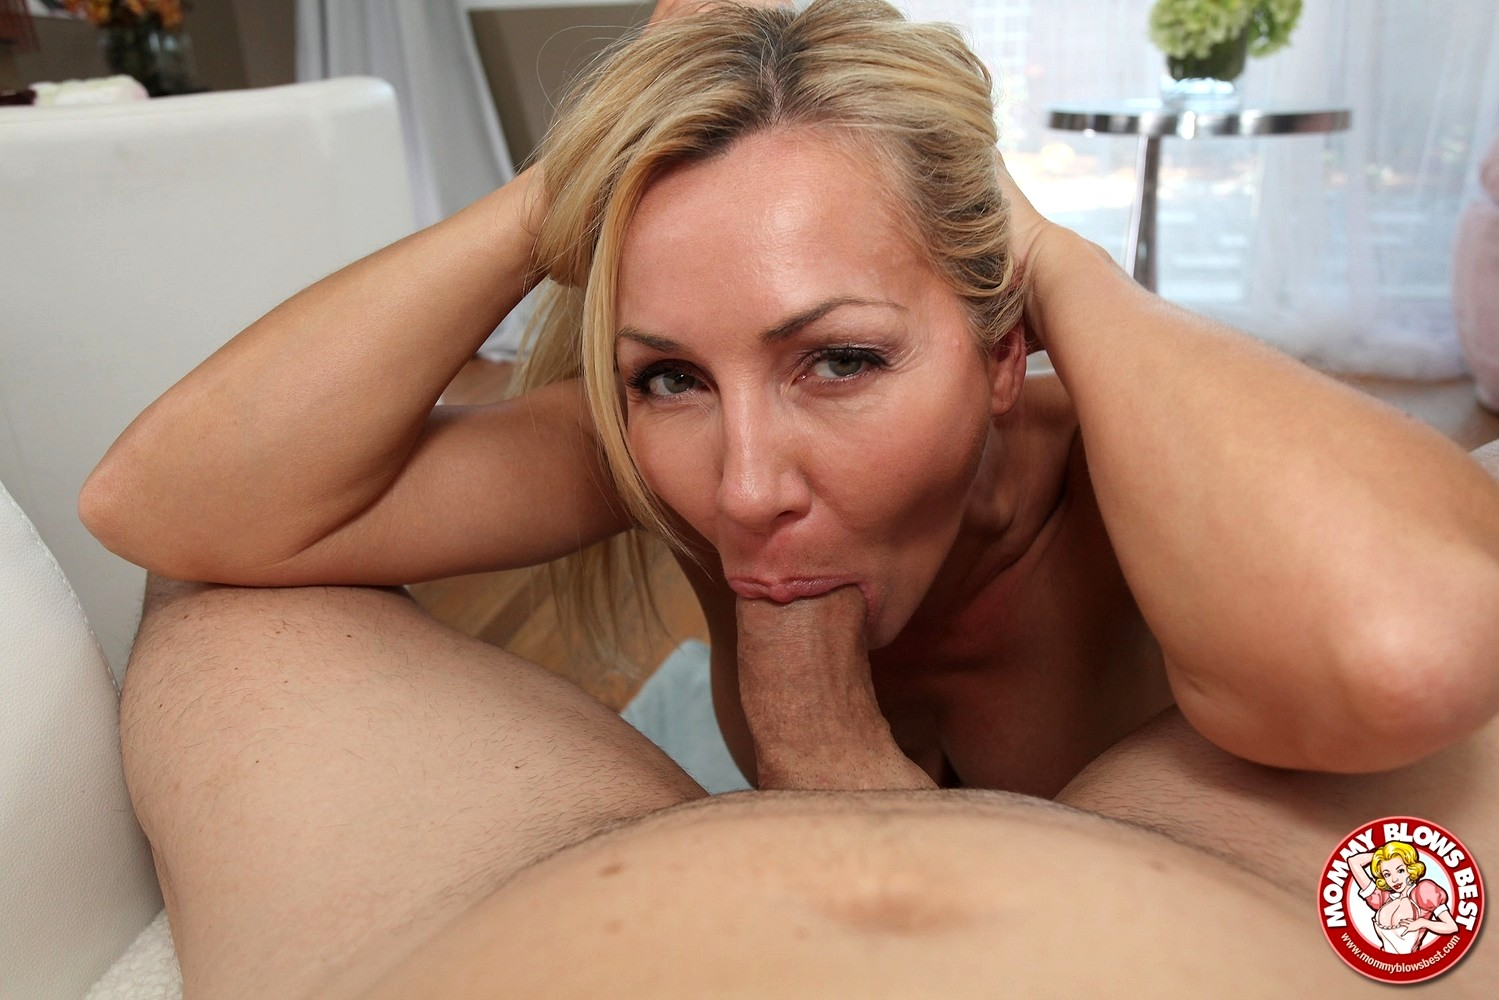 Babe Today Mommy Blows Best Mommyblowsbest Model High -9502